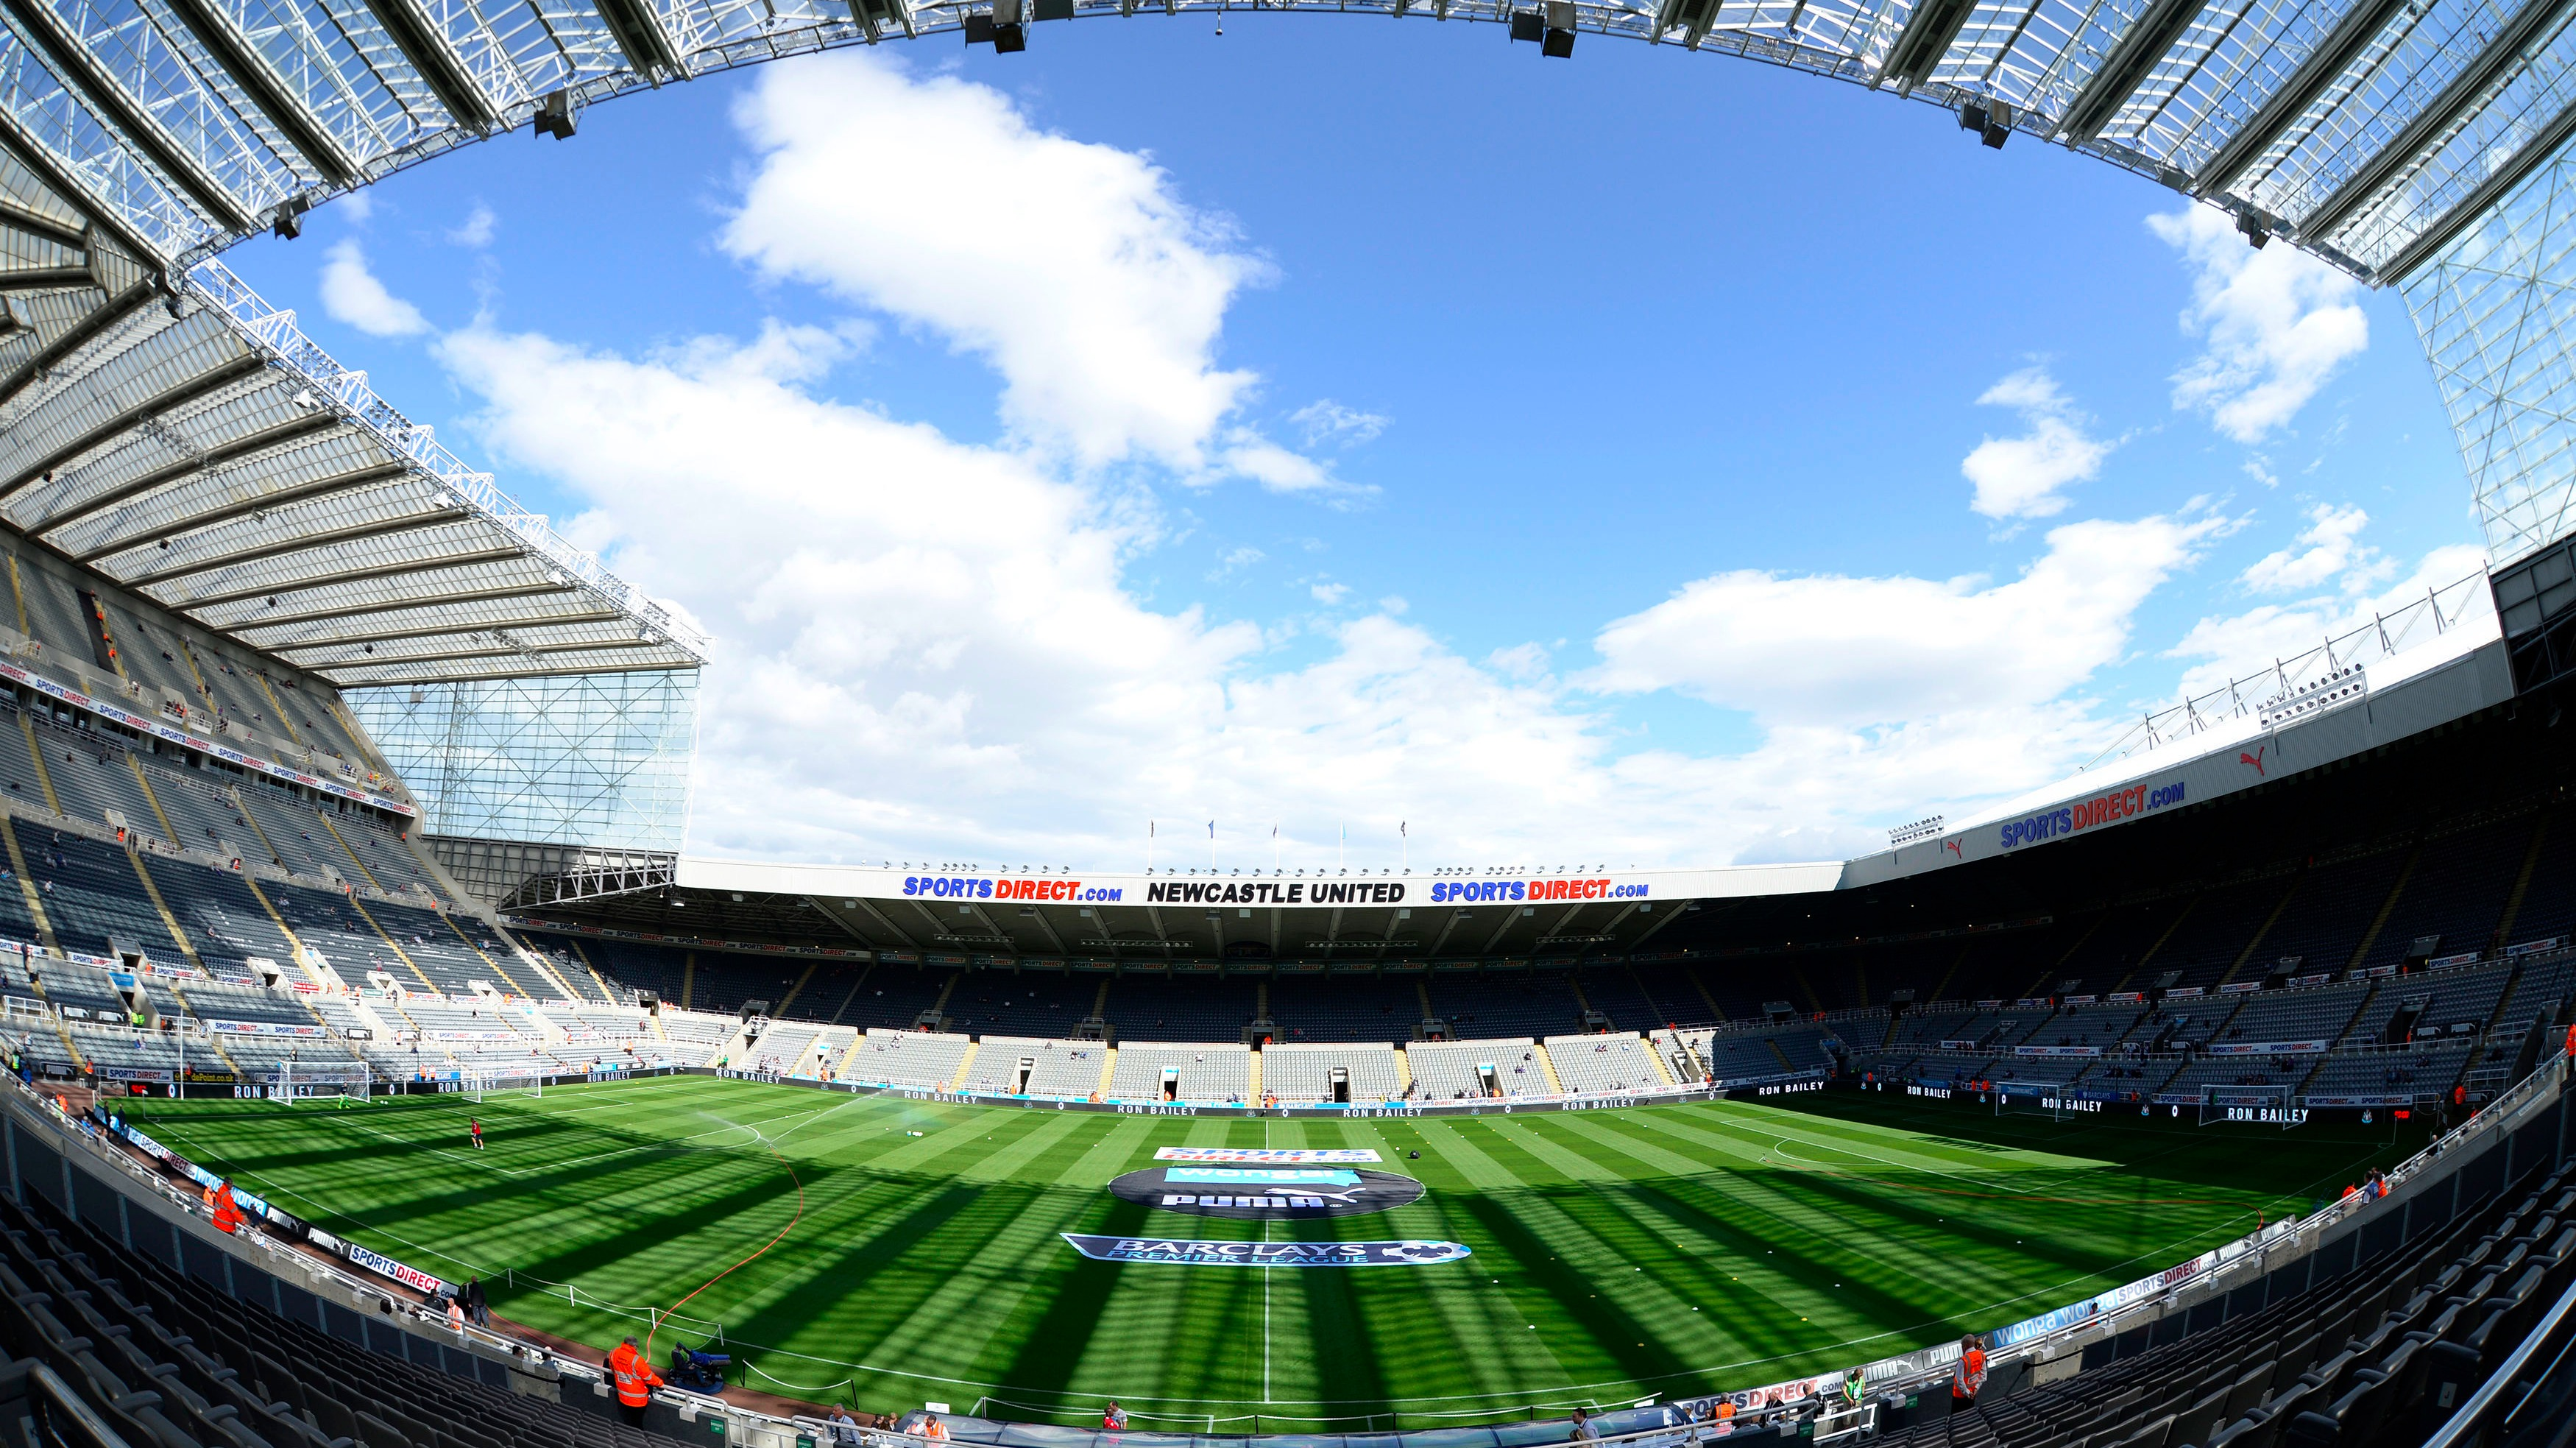 the mall at st james park Find cheap tickets and live train times from st james park to st pancras international with trainline - europe's leading independent train ticket retailer.